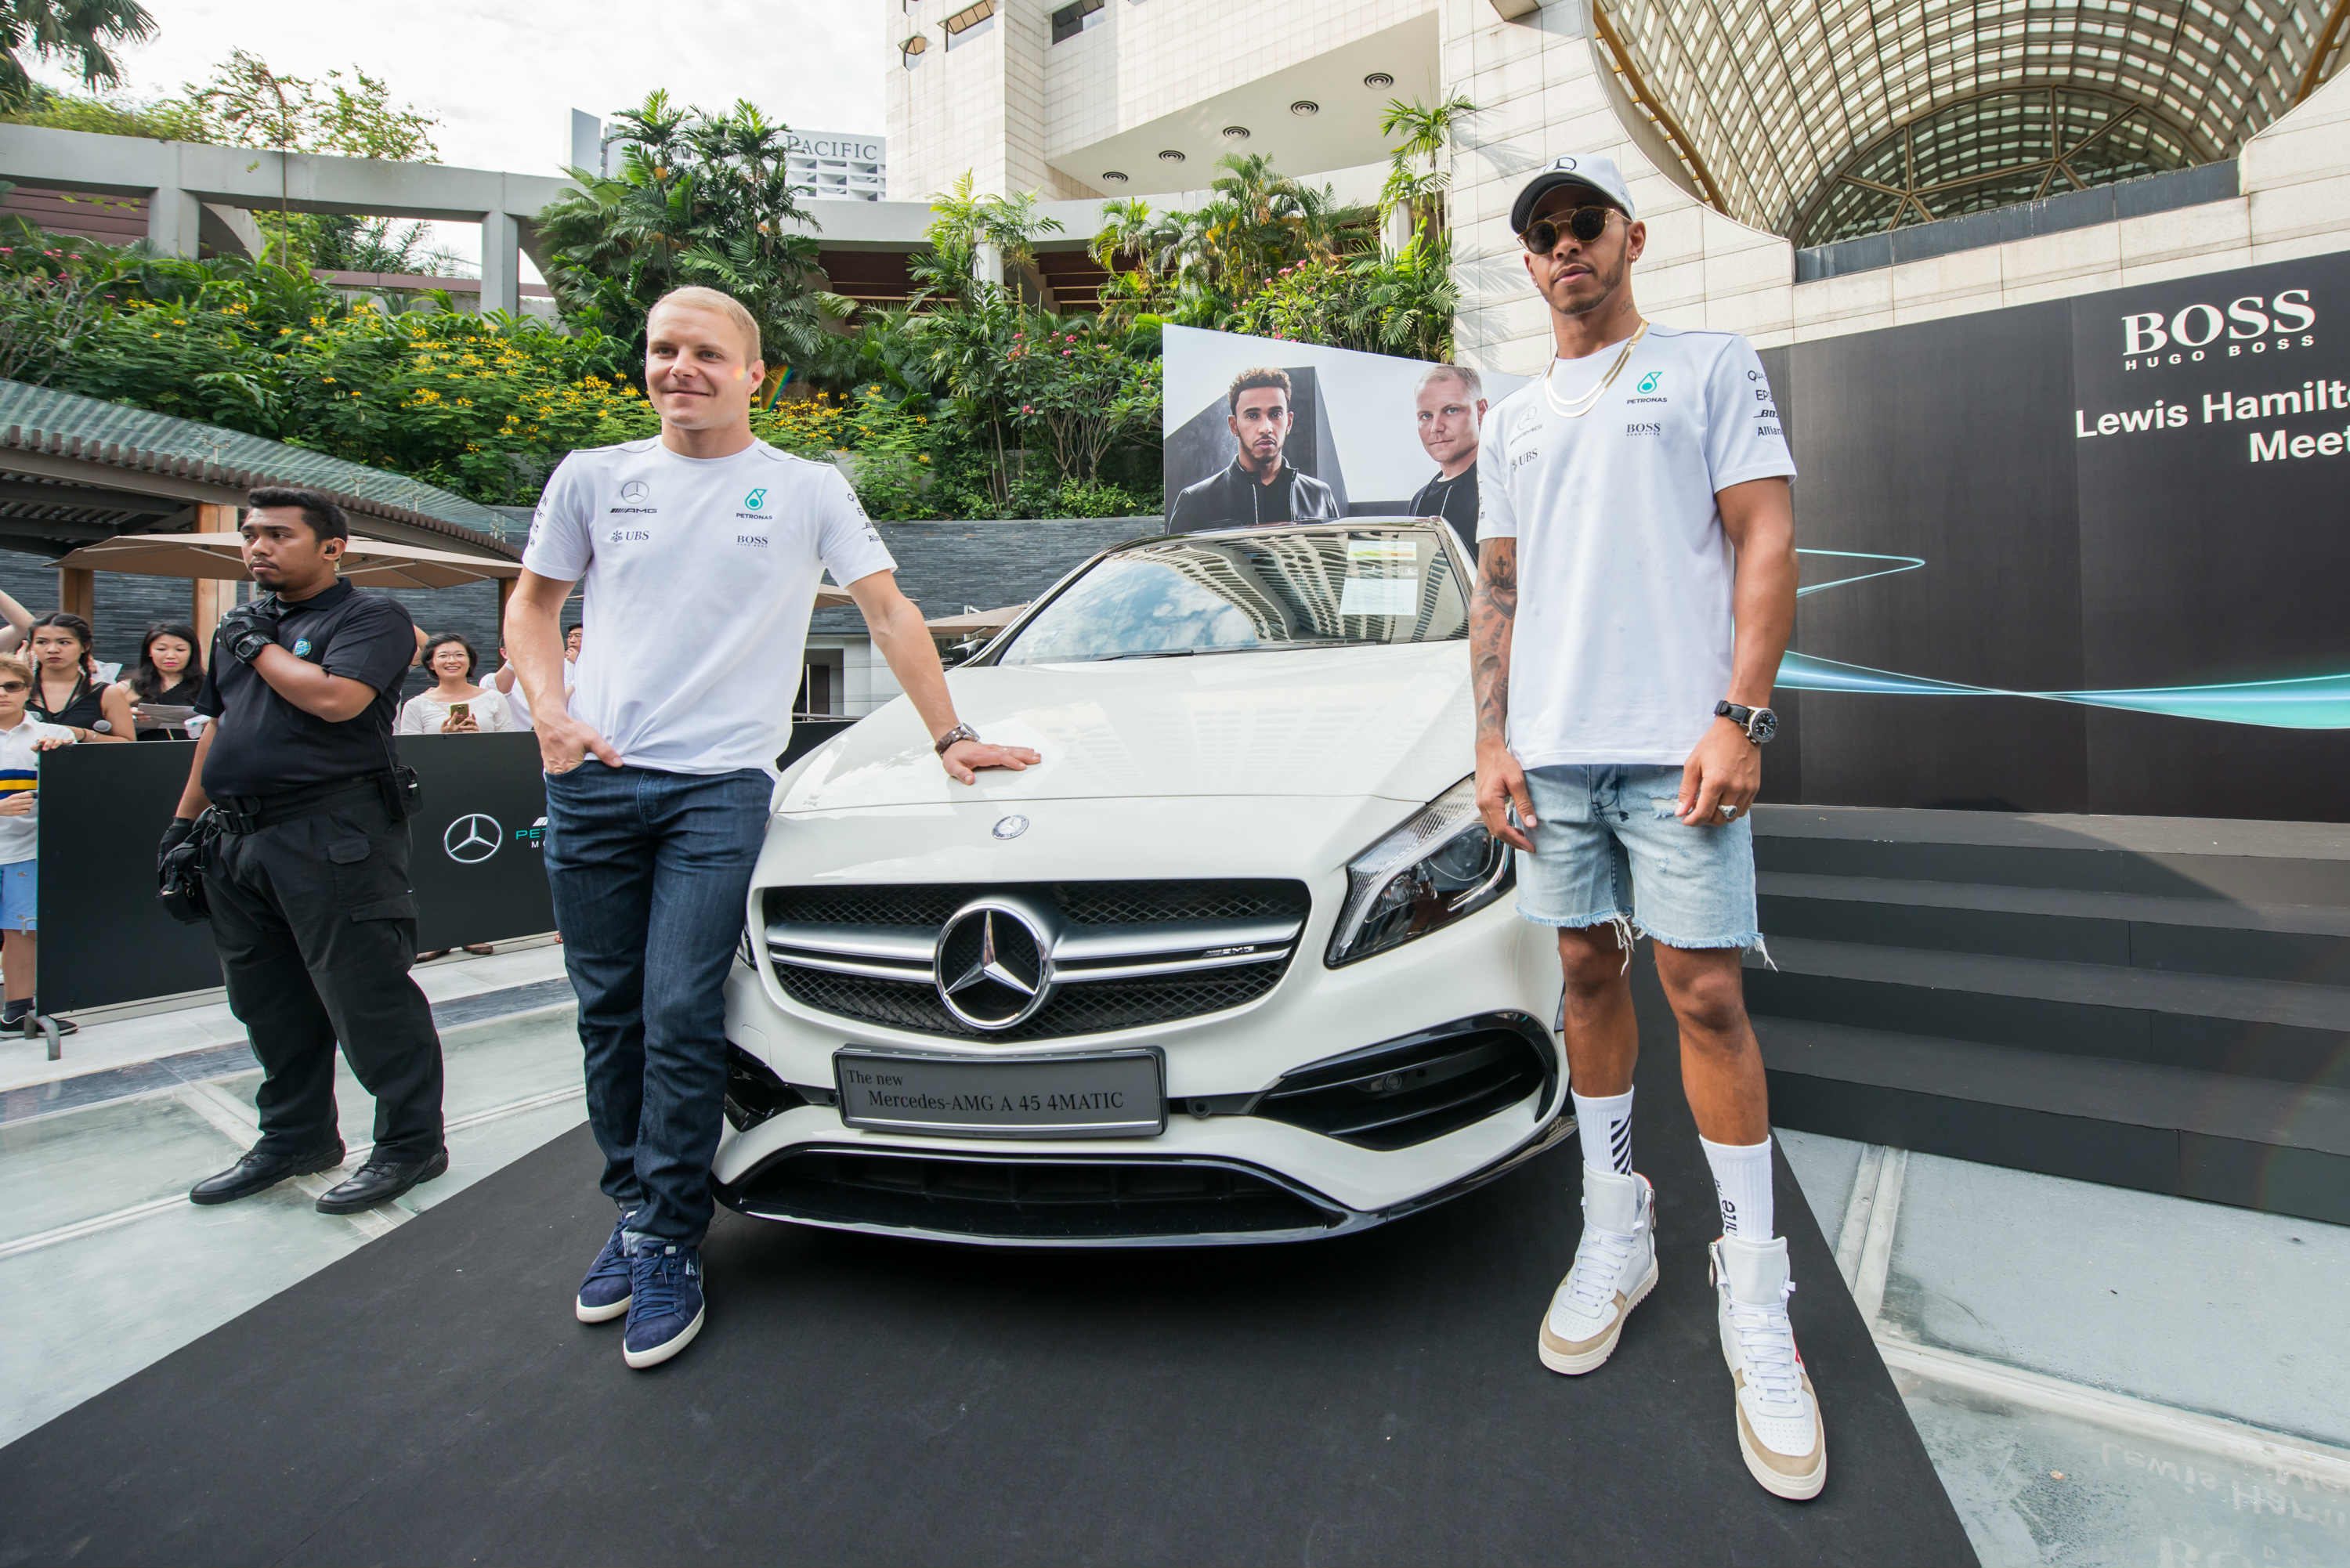 Mercedes amg petronas f1 drivers meet their fans in singapore torque m4hsunfo